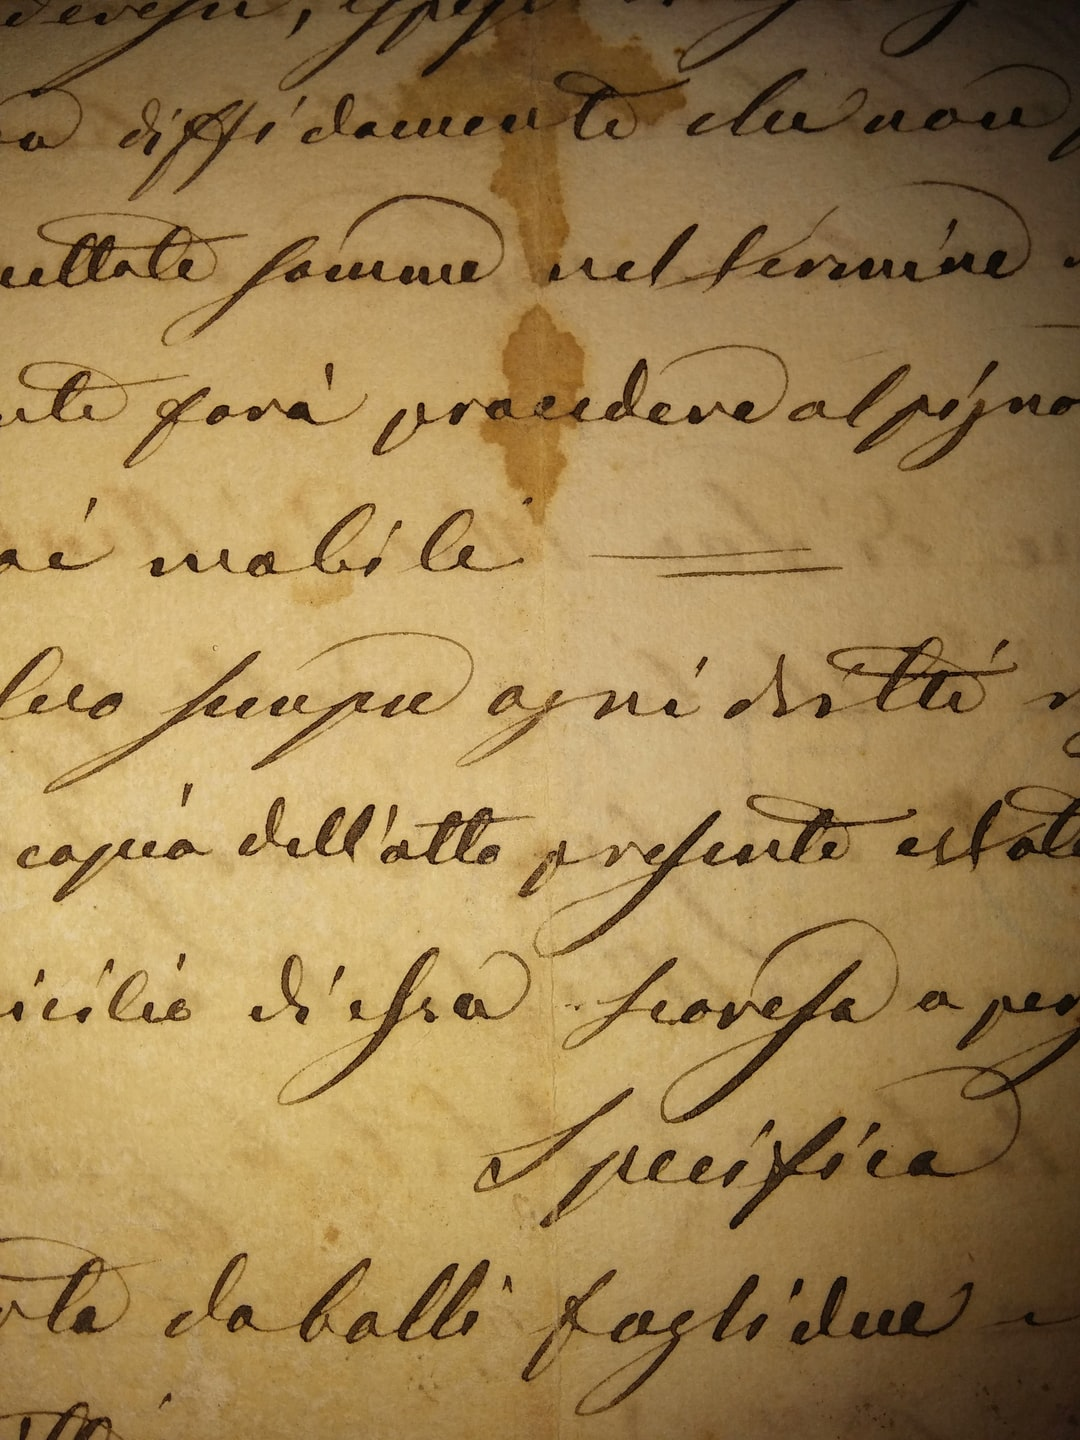 A pic of an ancient notarial document coming from the south of Italy